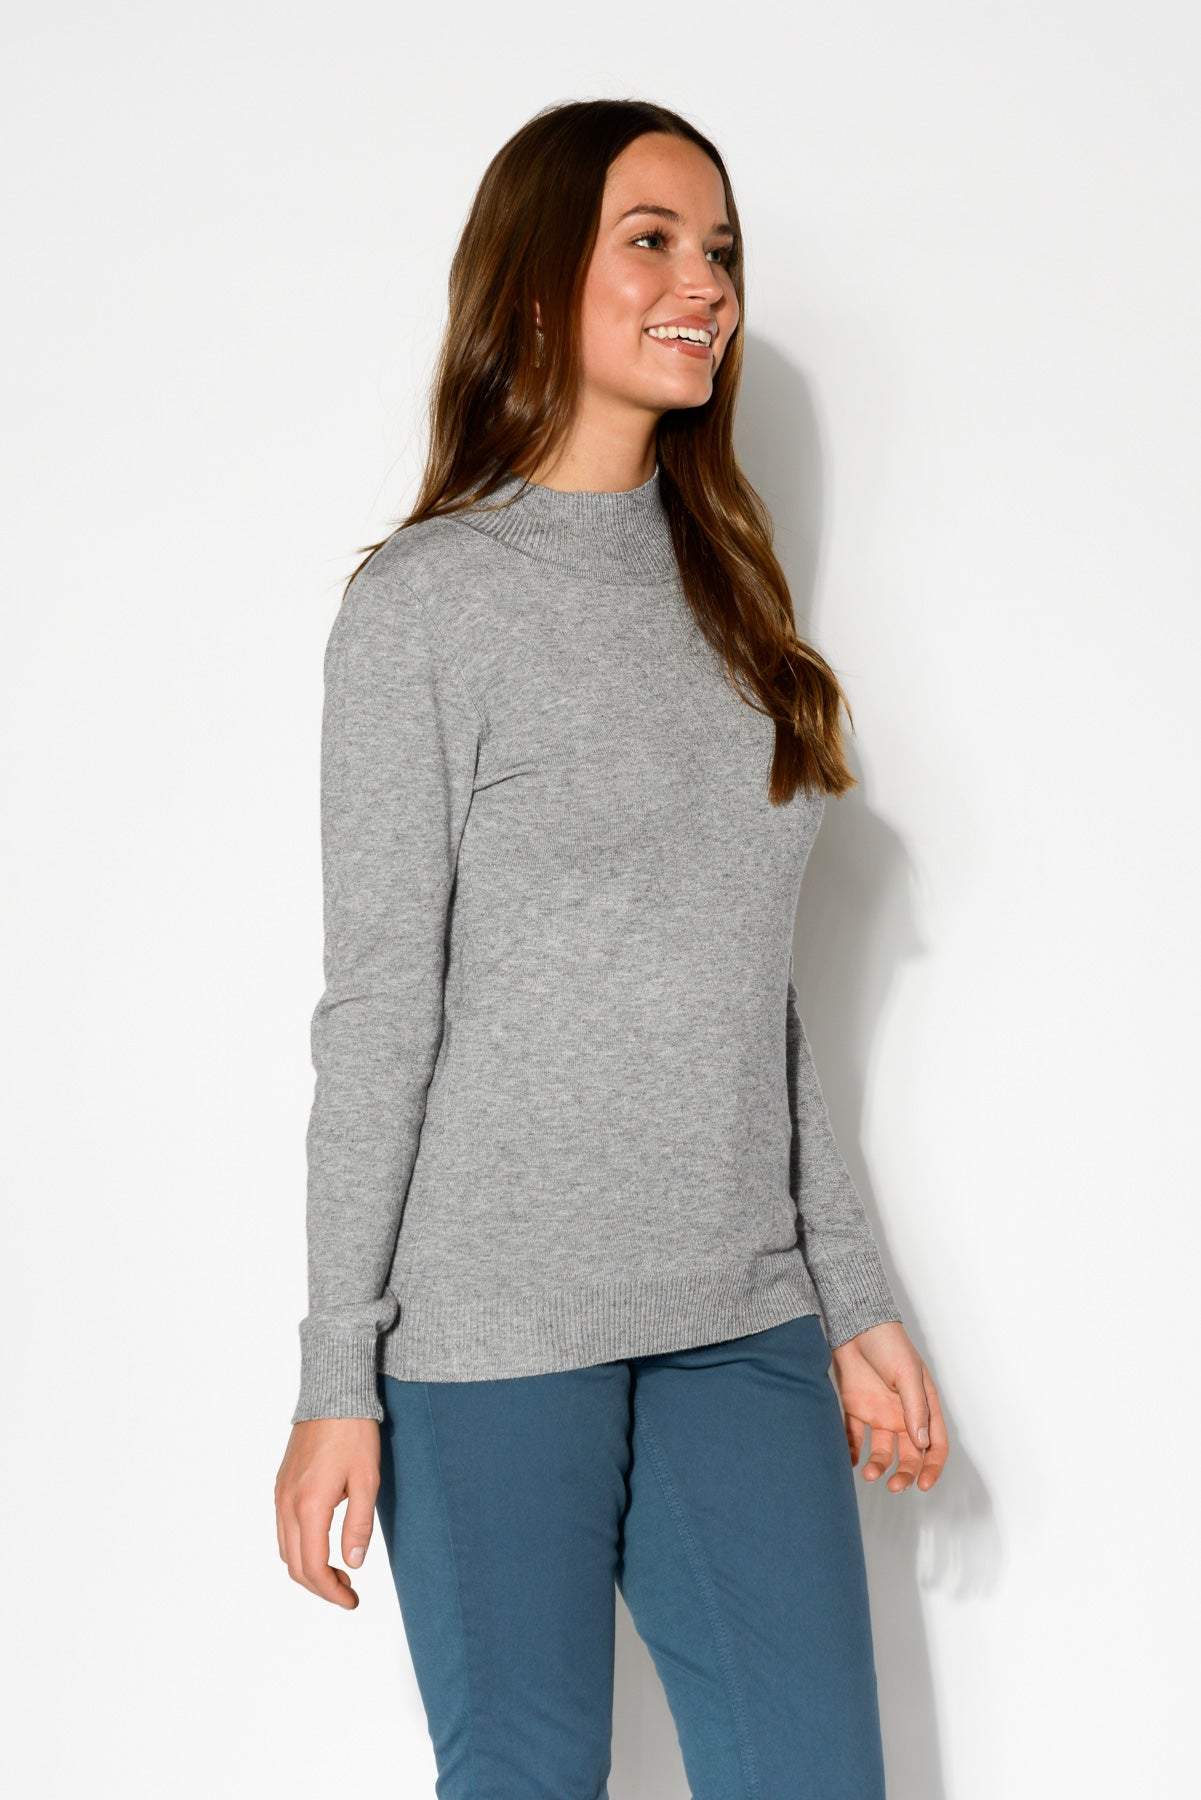 Sharni Grey Knit Top - Blue Bungalow